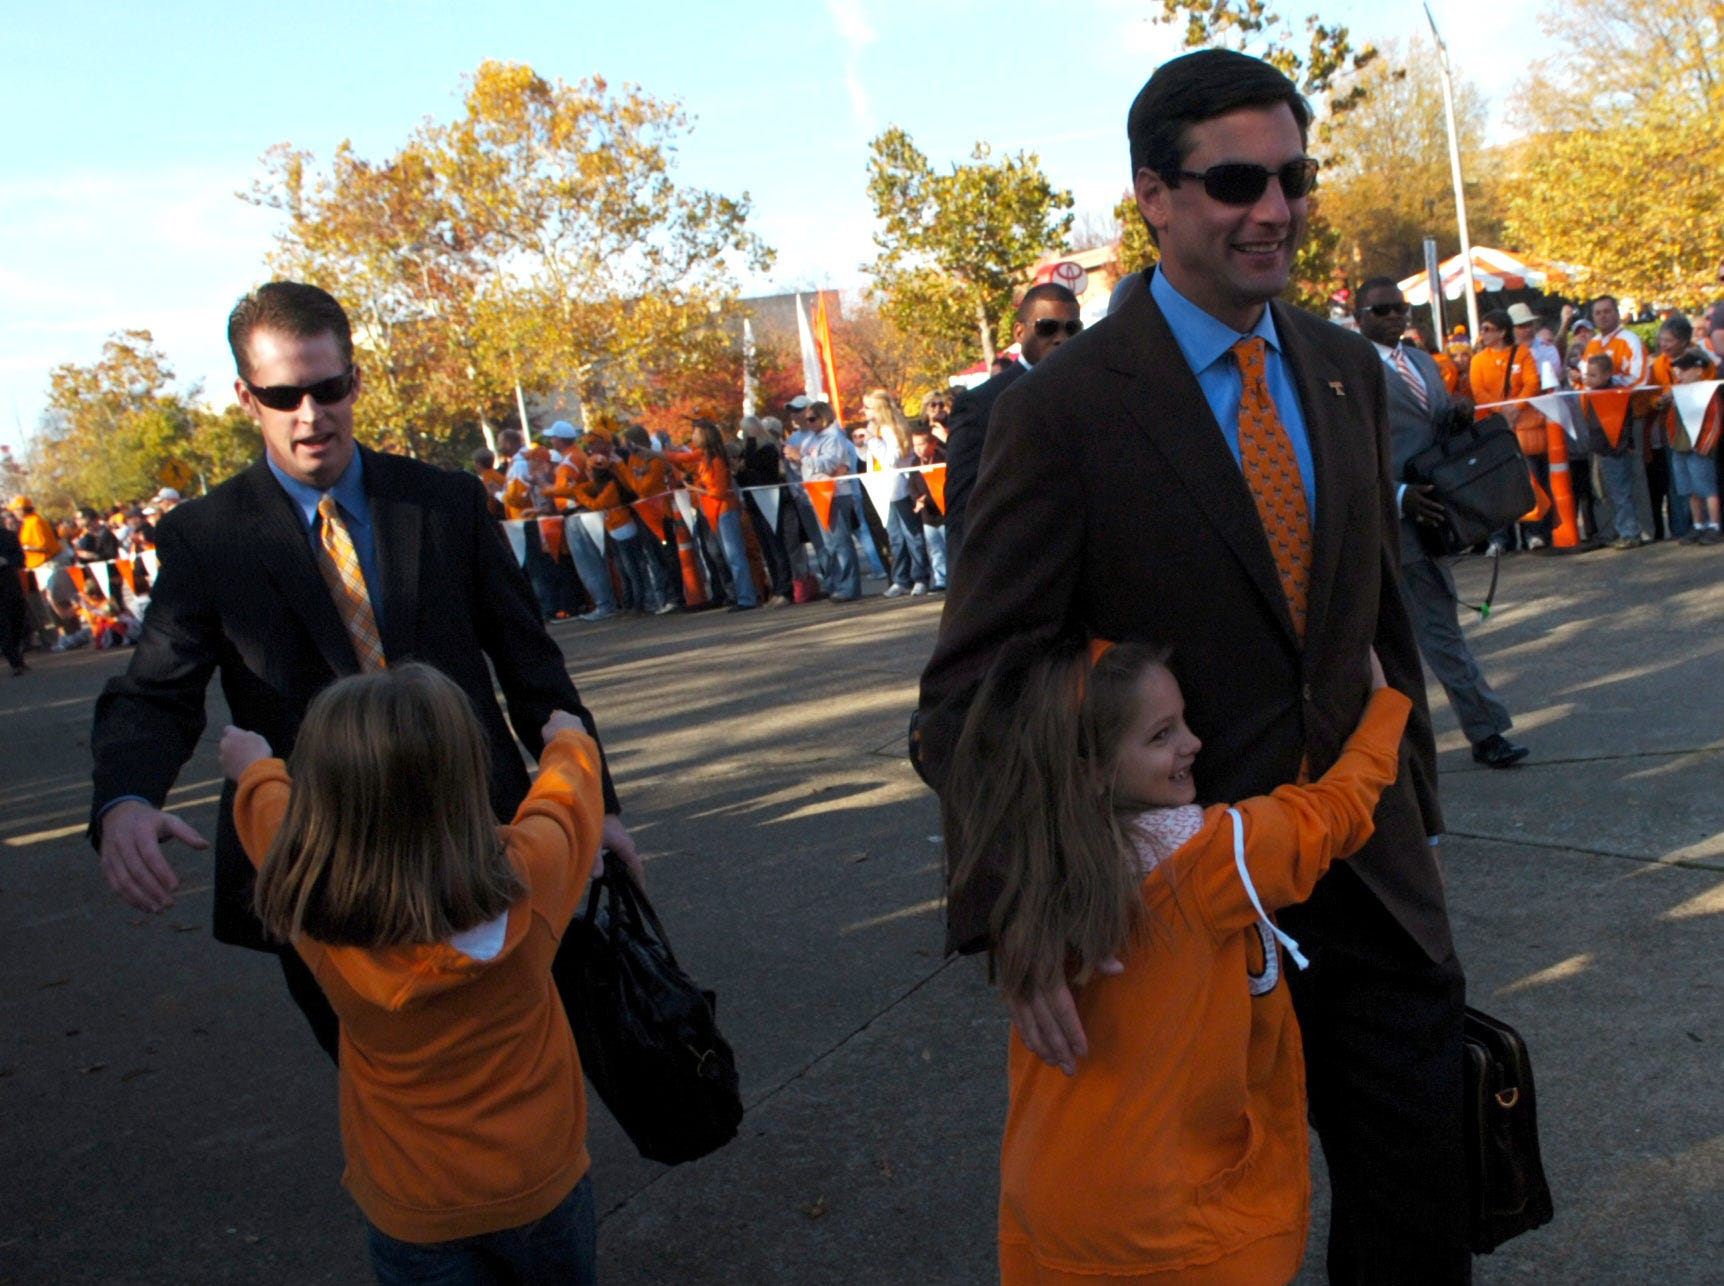 Tennessee quarterbacks coach Darin Hinshaw and head coach Derek Dooley are greeted by daughters Carley and Julianna before the Vol Walk on Saturday, Nov. 13, 2010.